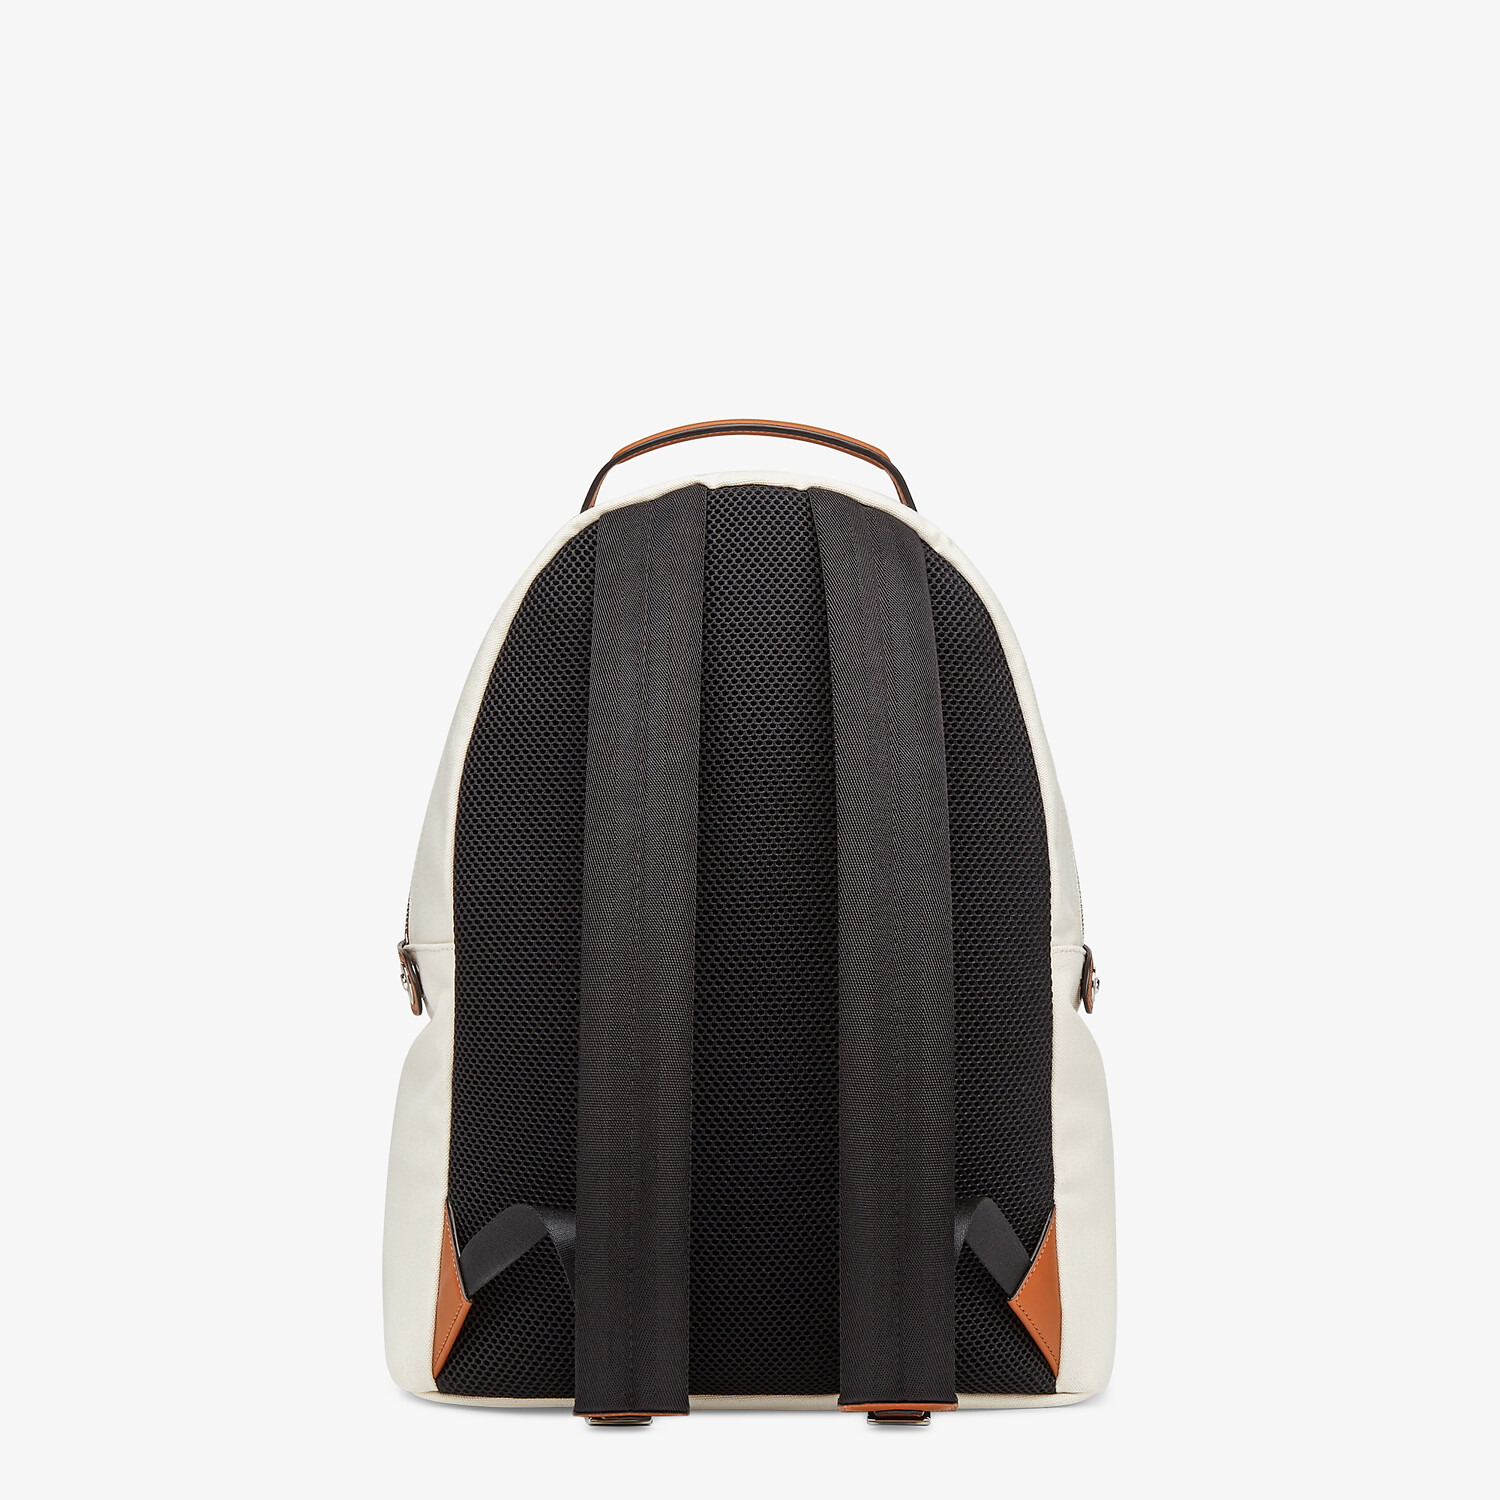 FENDI ESSENTIAL BACKPACK - Undyed canvas backpack - view 4 detail